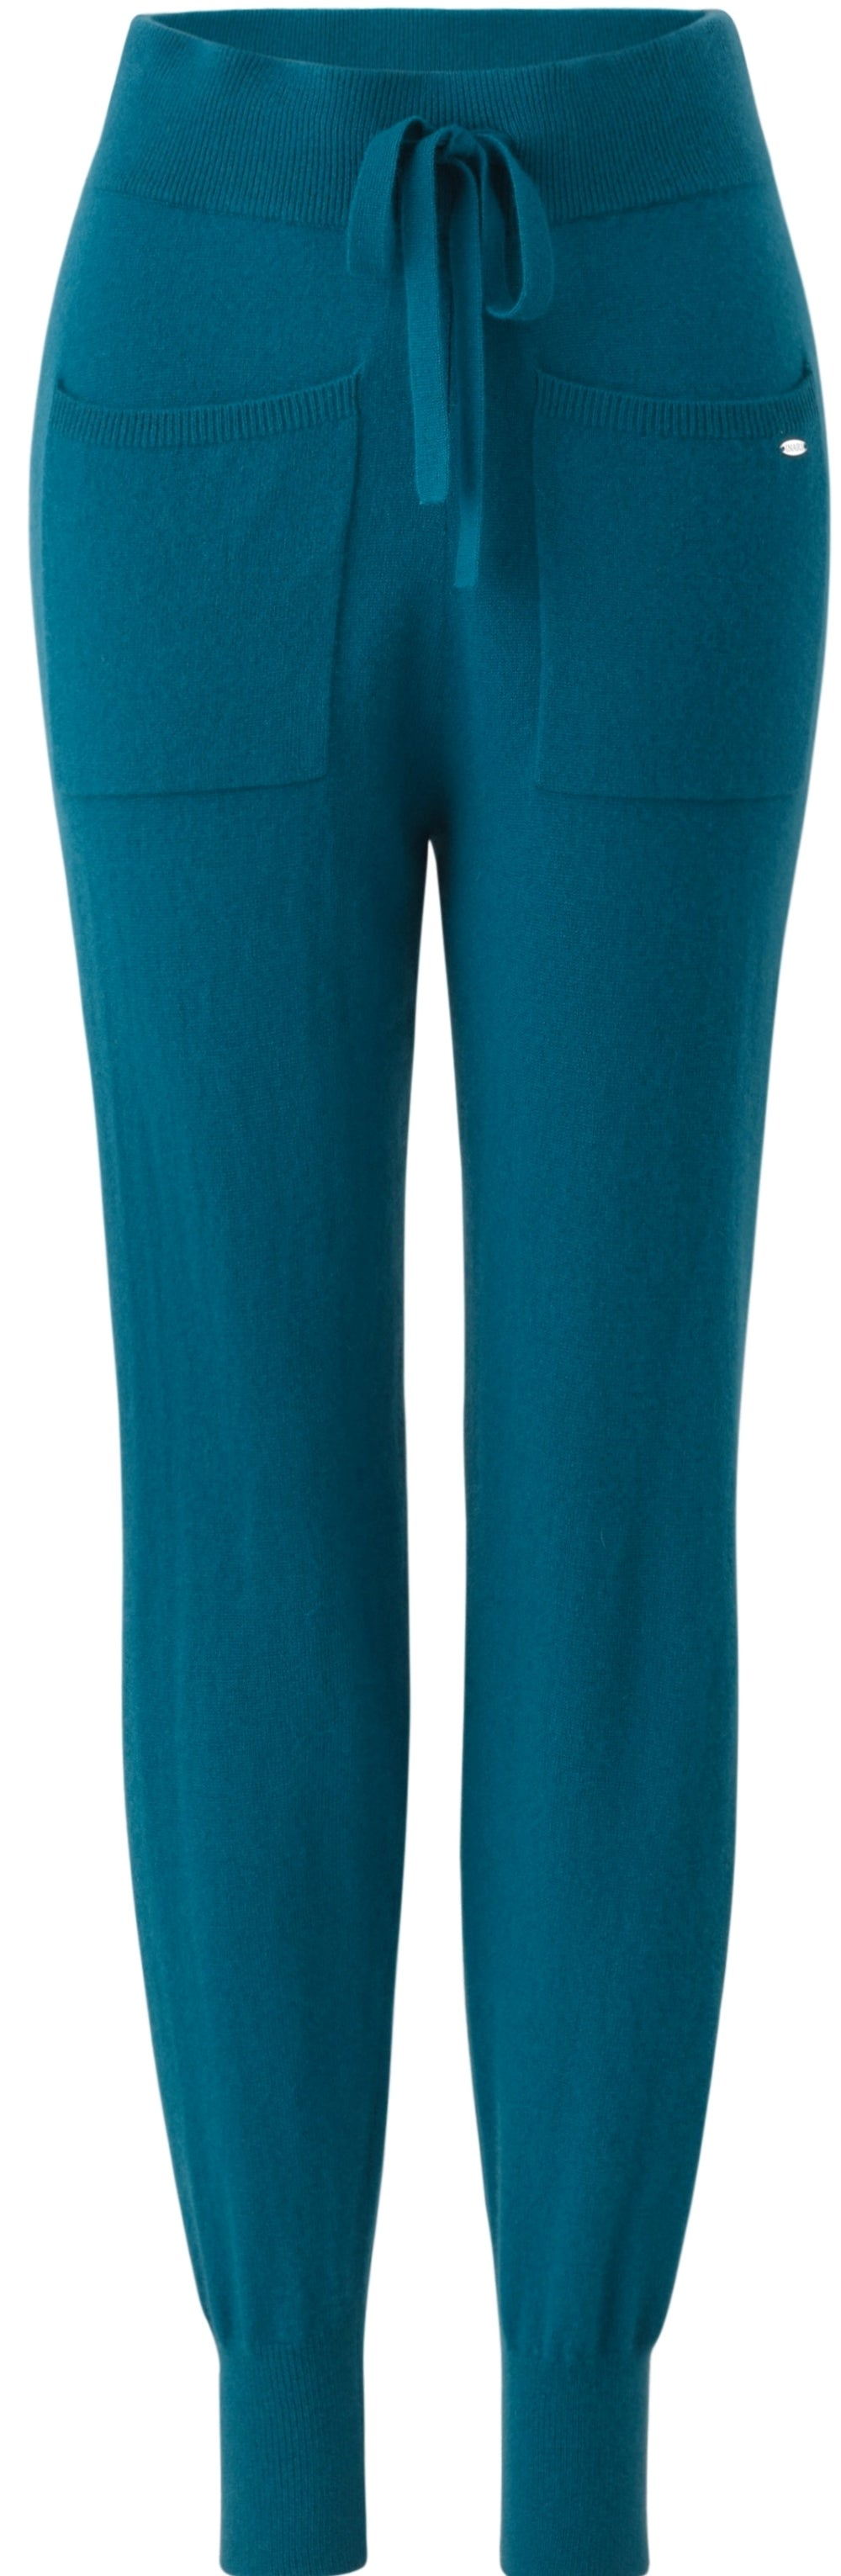 Women's cashmere pants with pockets